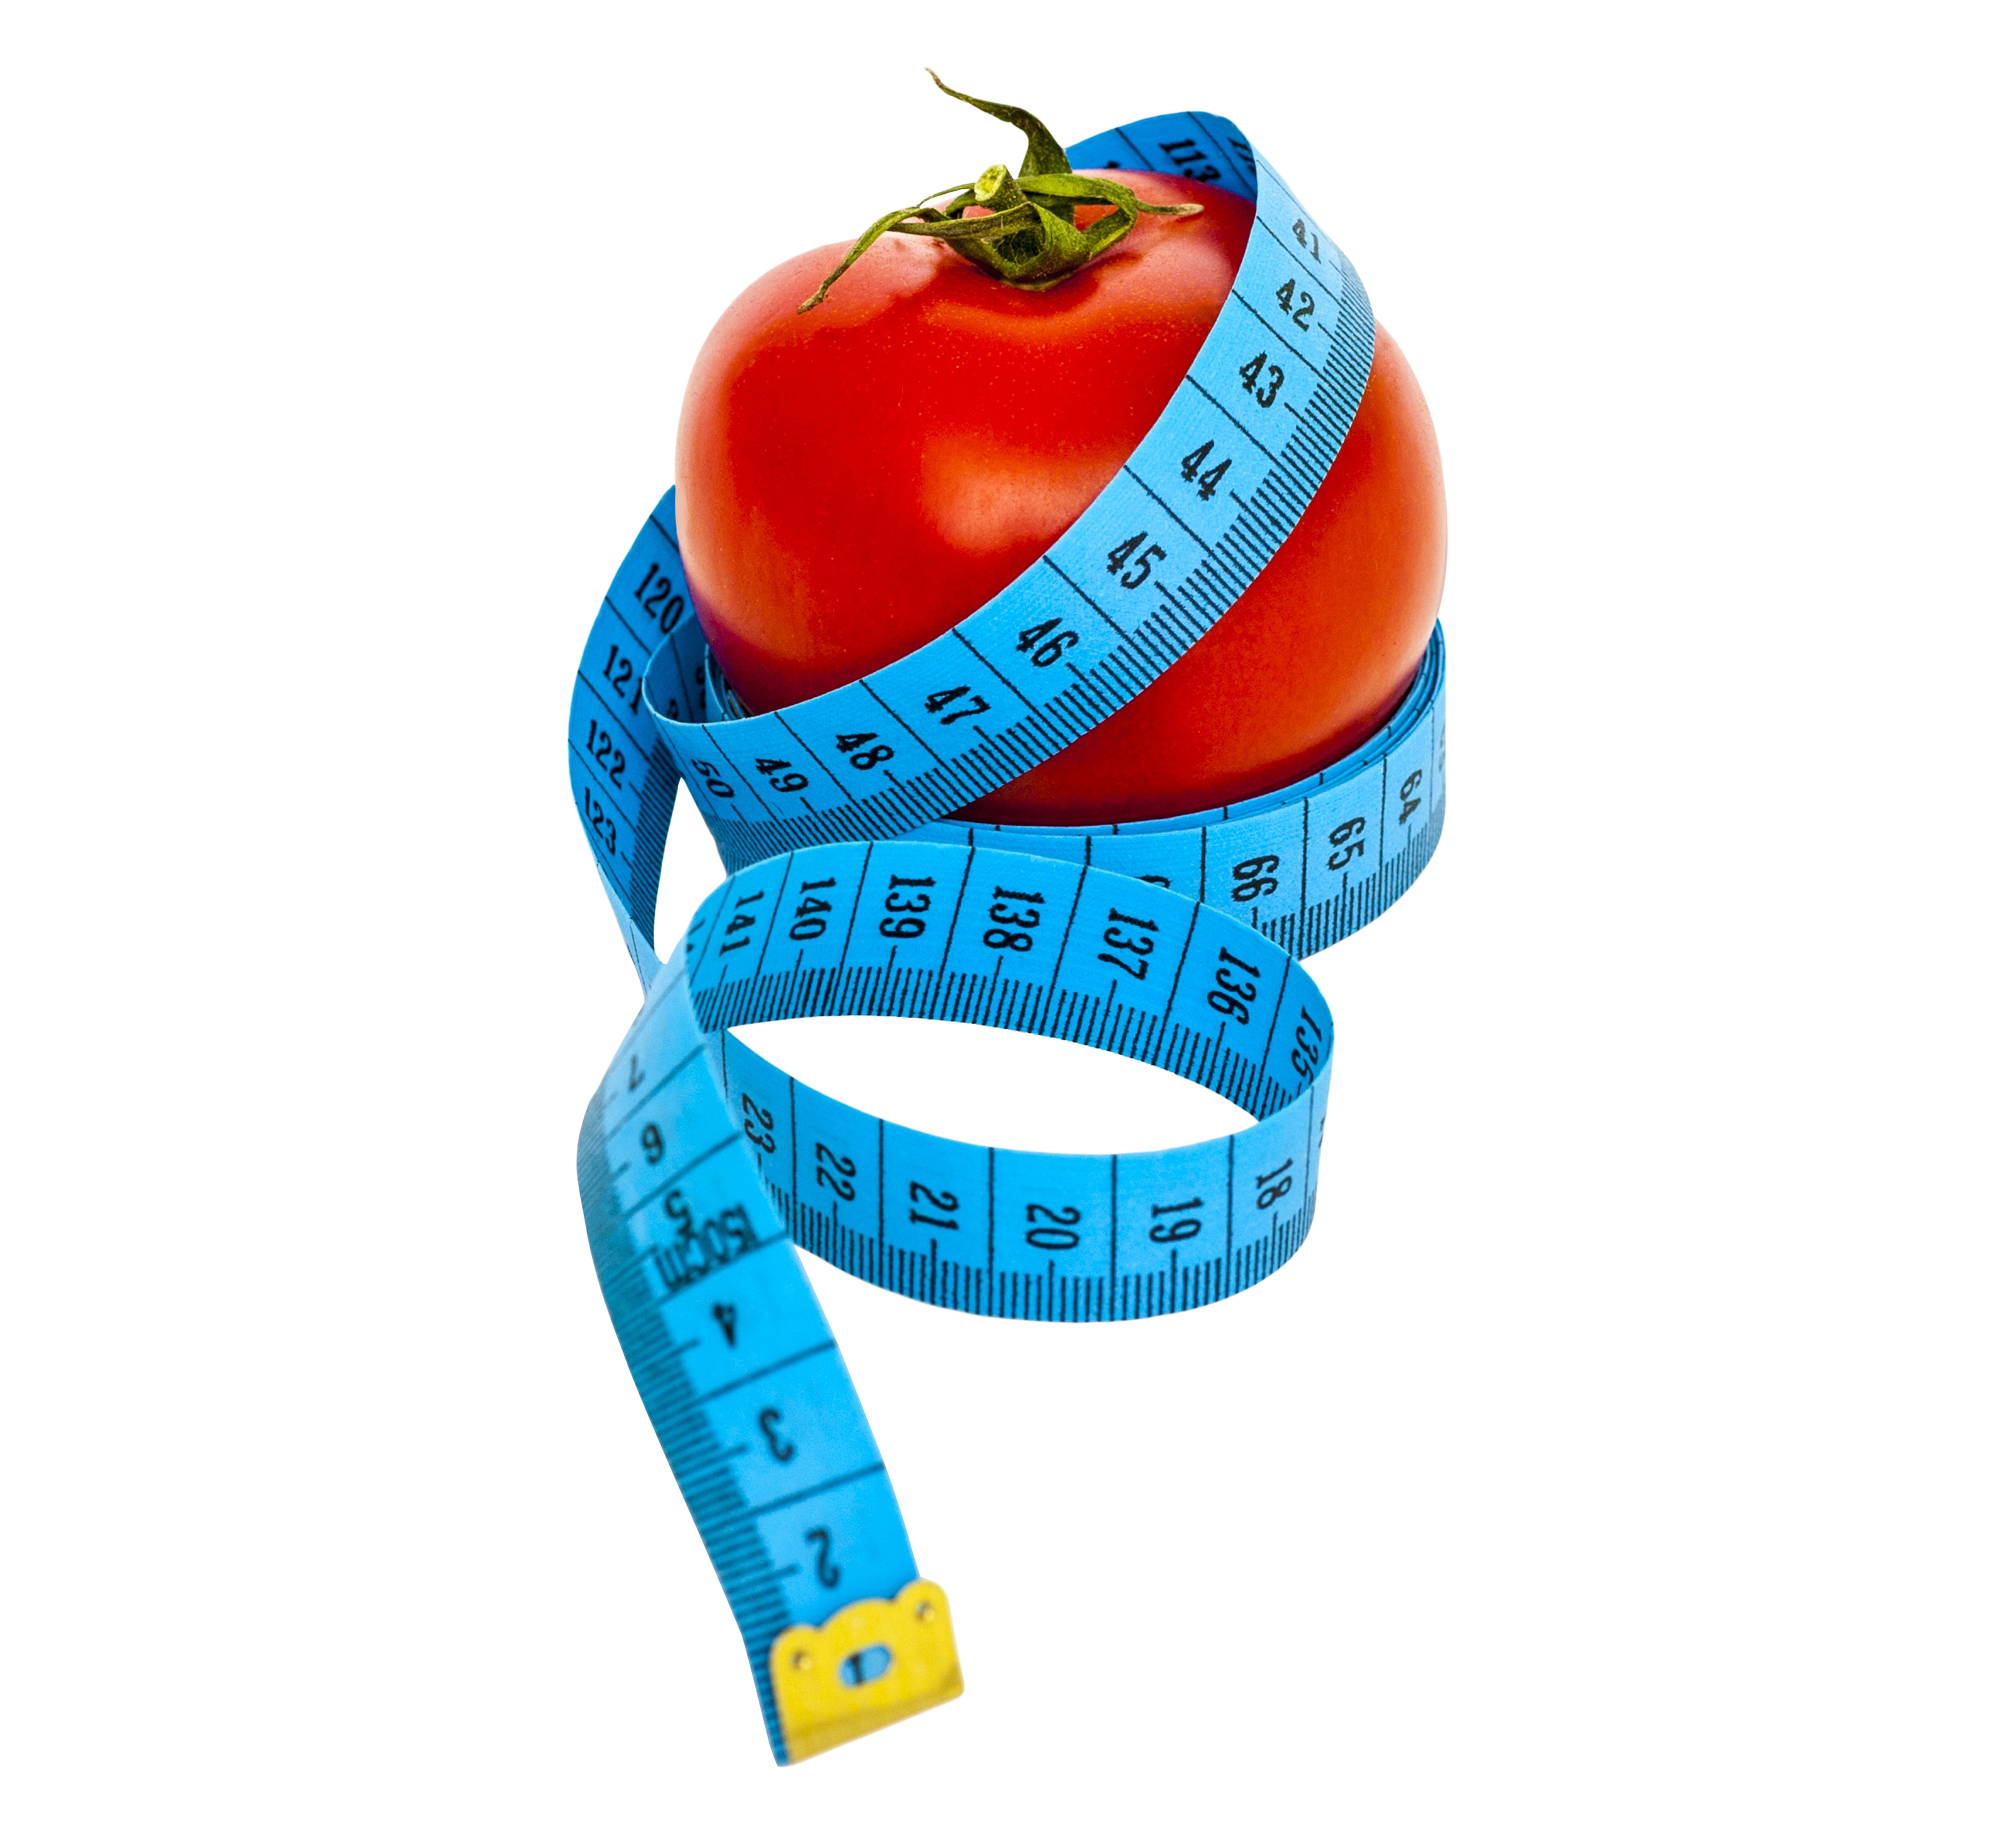 Tomato Diet PNG Image